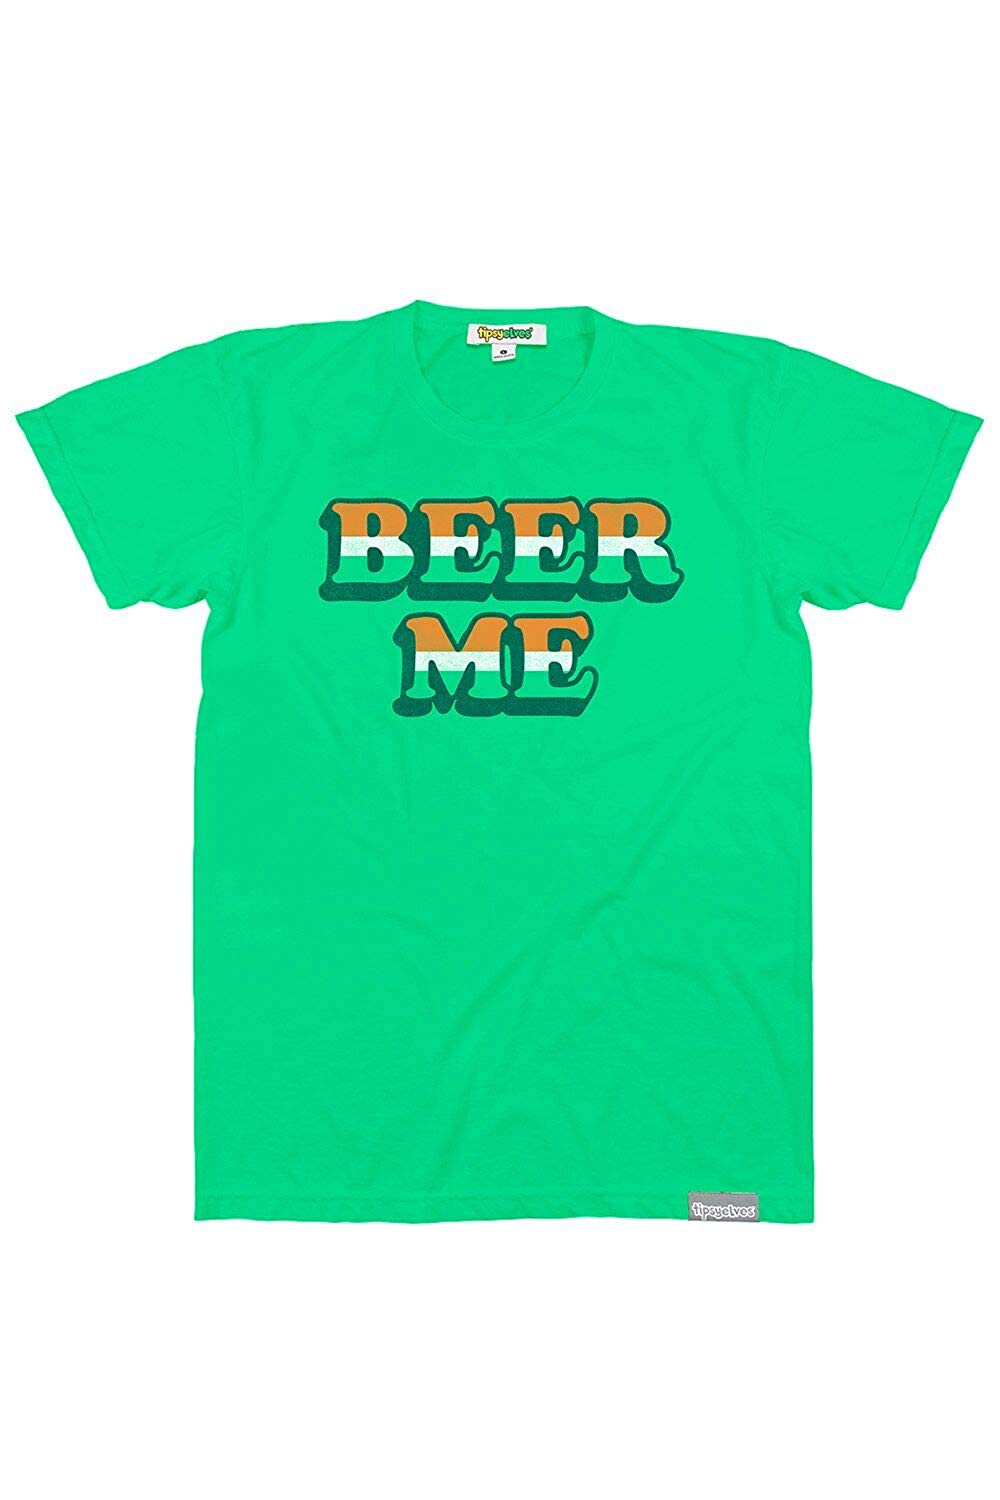 6eb4c739 Amazon.com: Men's Funny St. Patrick's Day Shirts - St. Paddy's T-Shirts  Apparel for Guys: Clothing